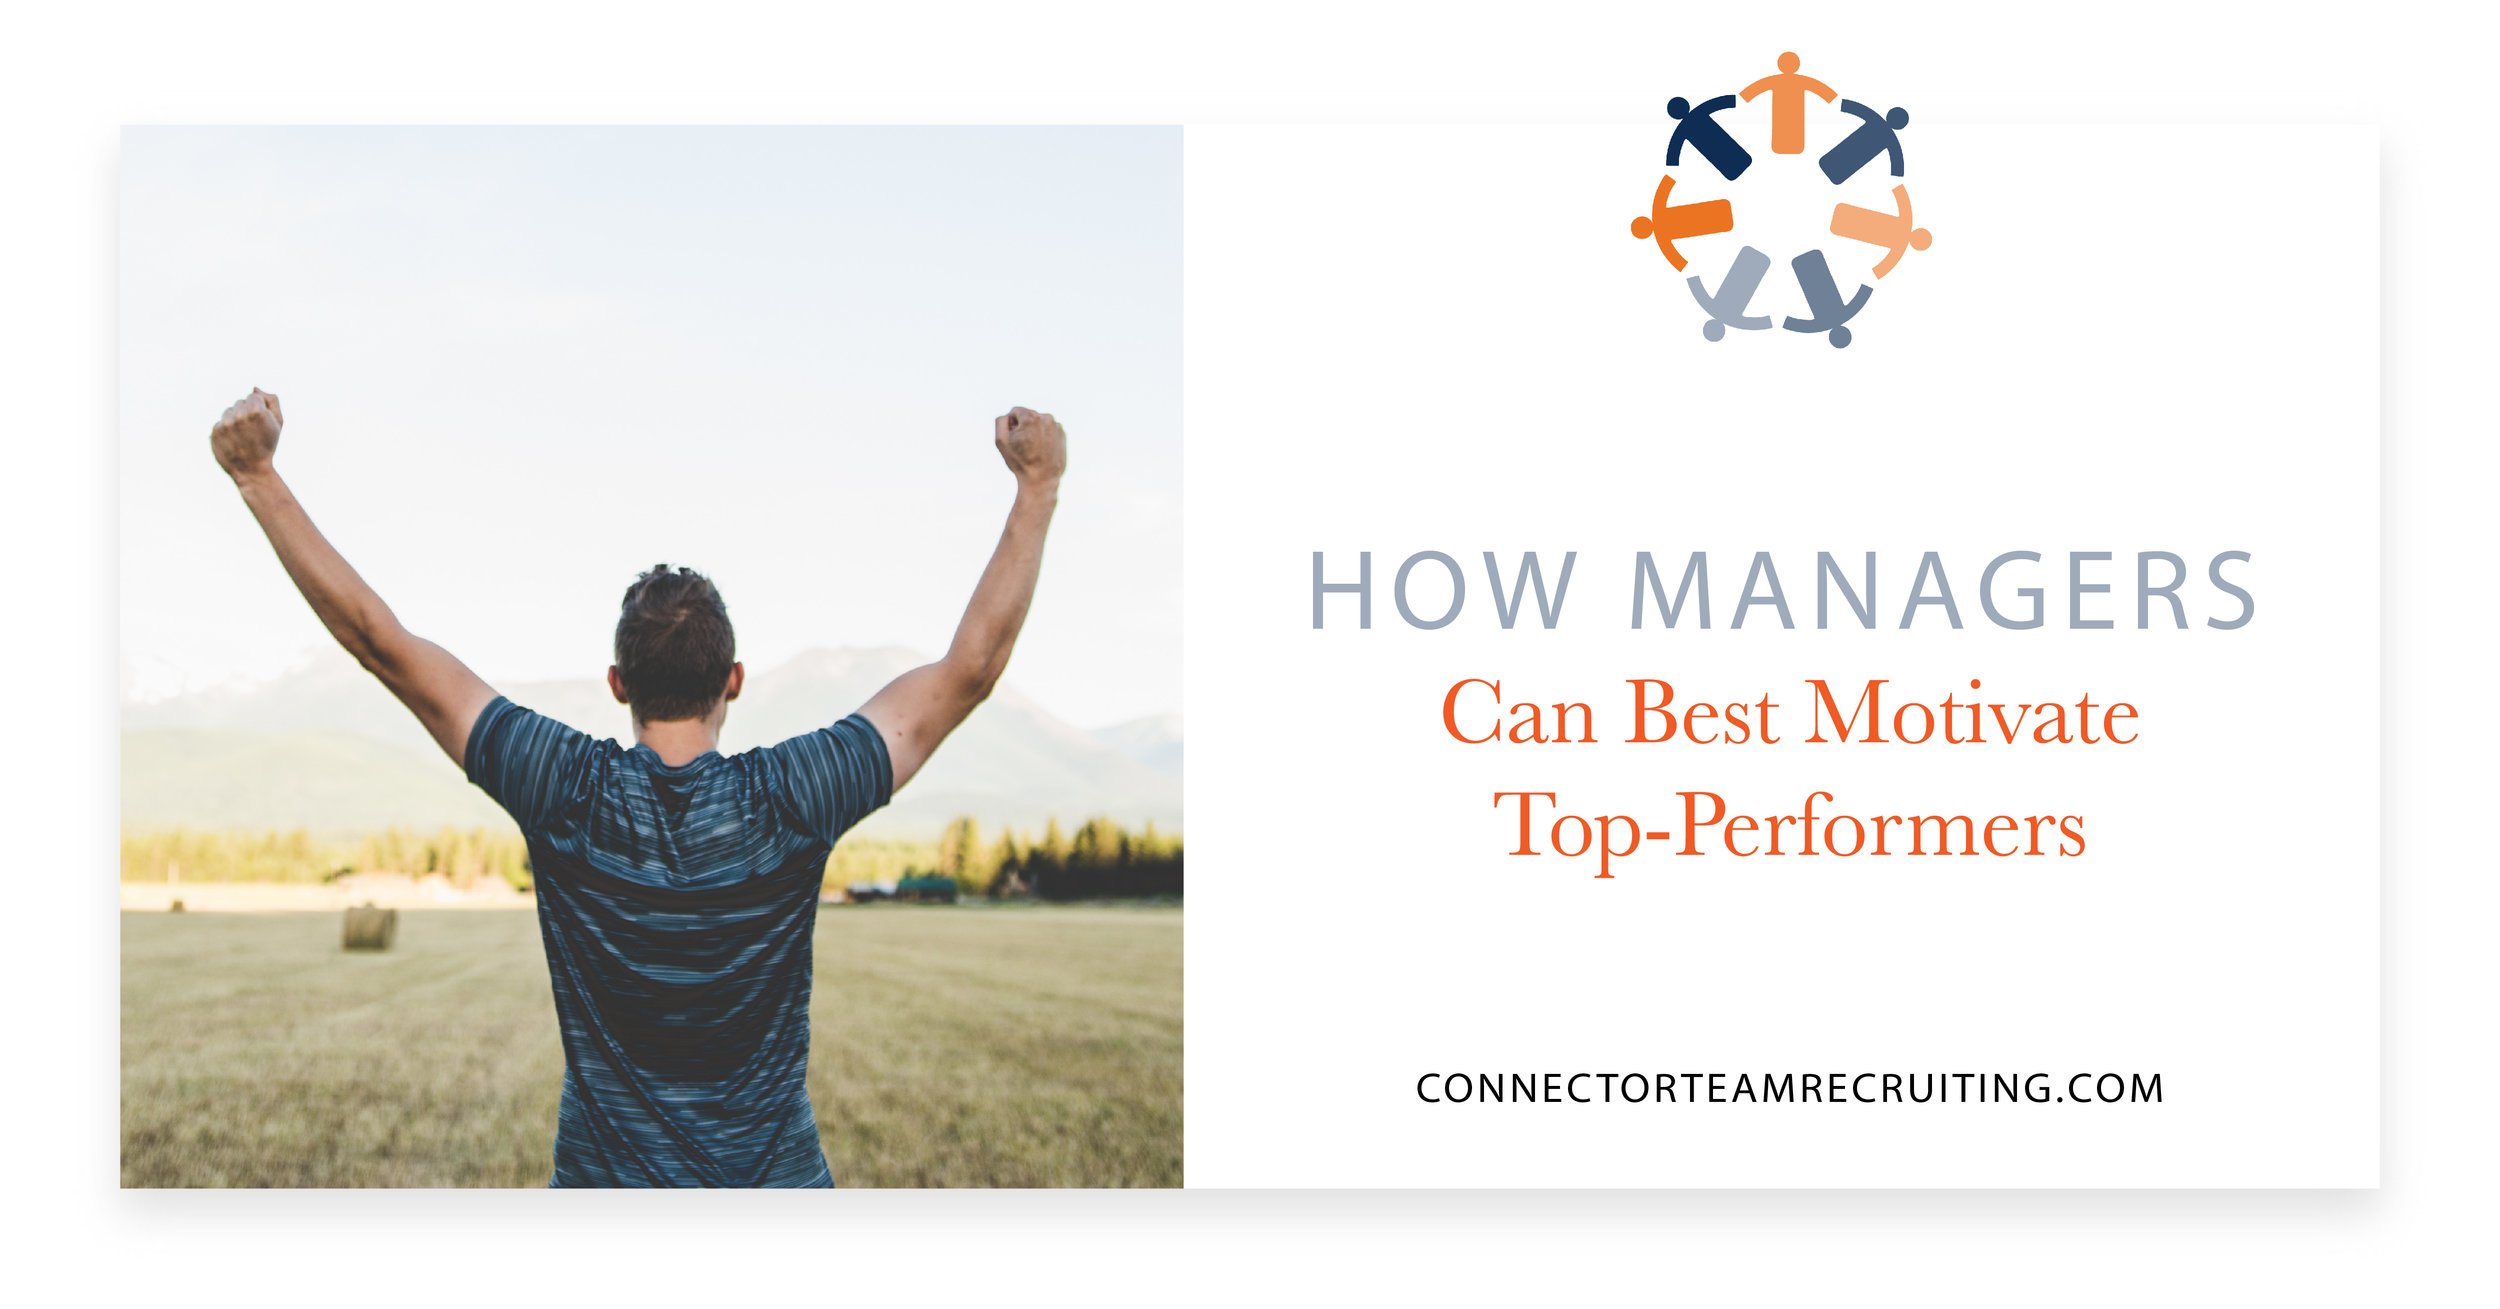 How Managers Can Best Motivate Top-Performers | Connector Team Recruiting.jpg